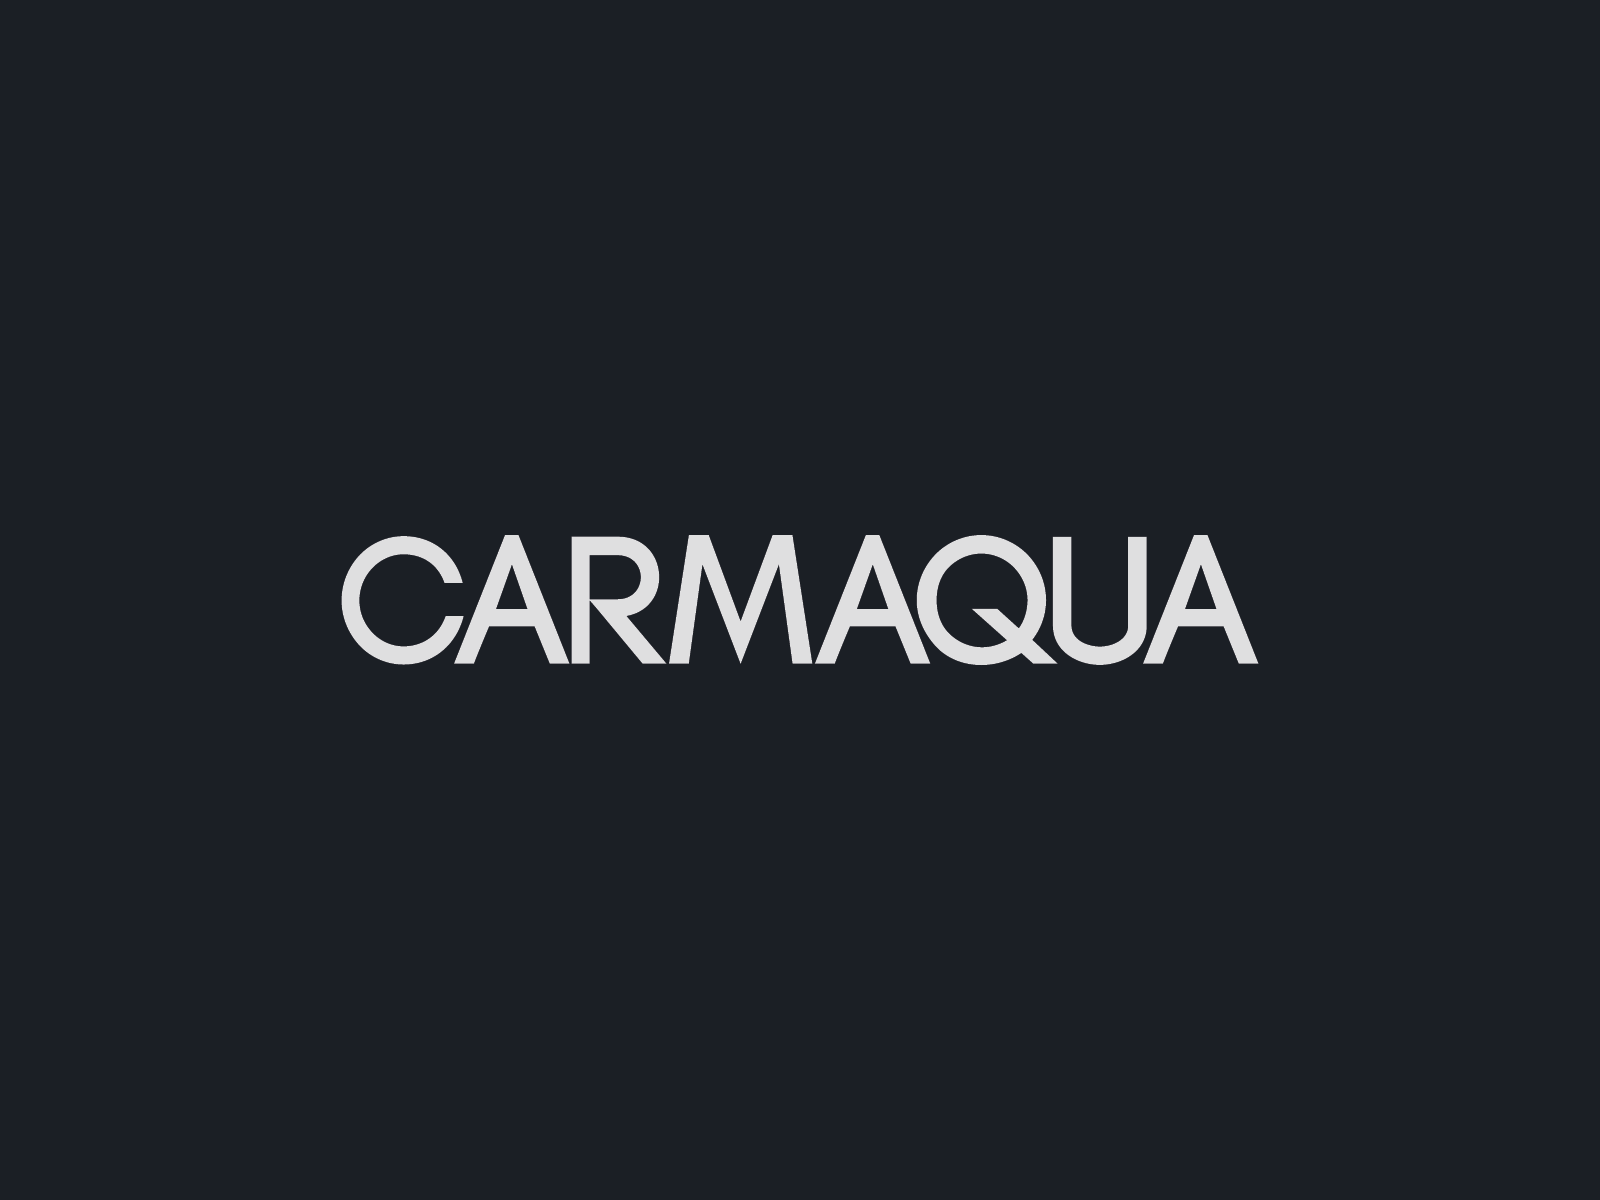 190920 carmaqua logotype inverted